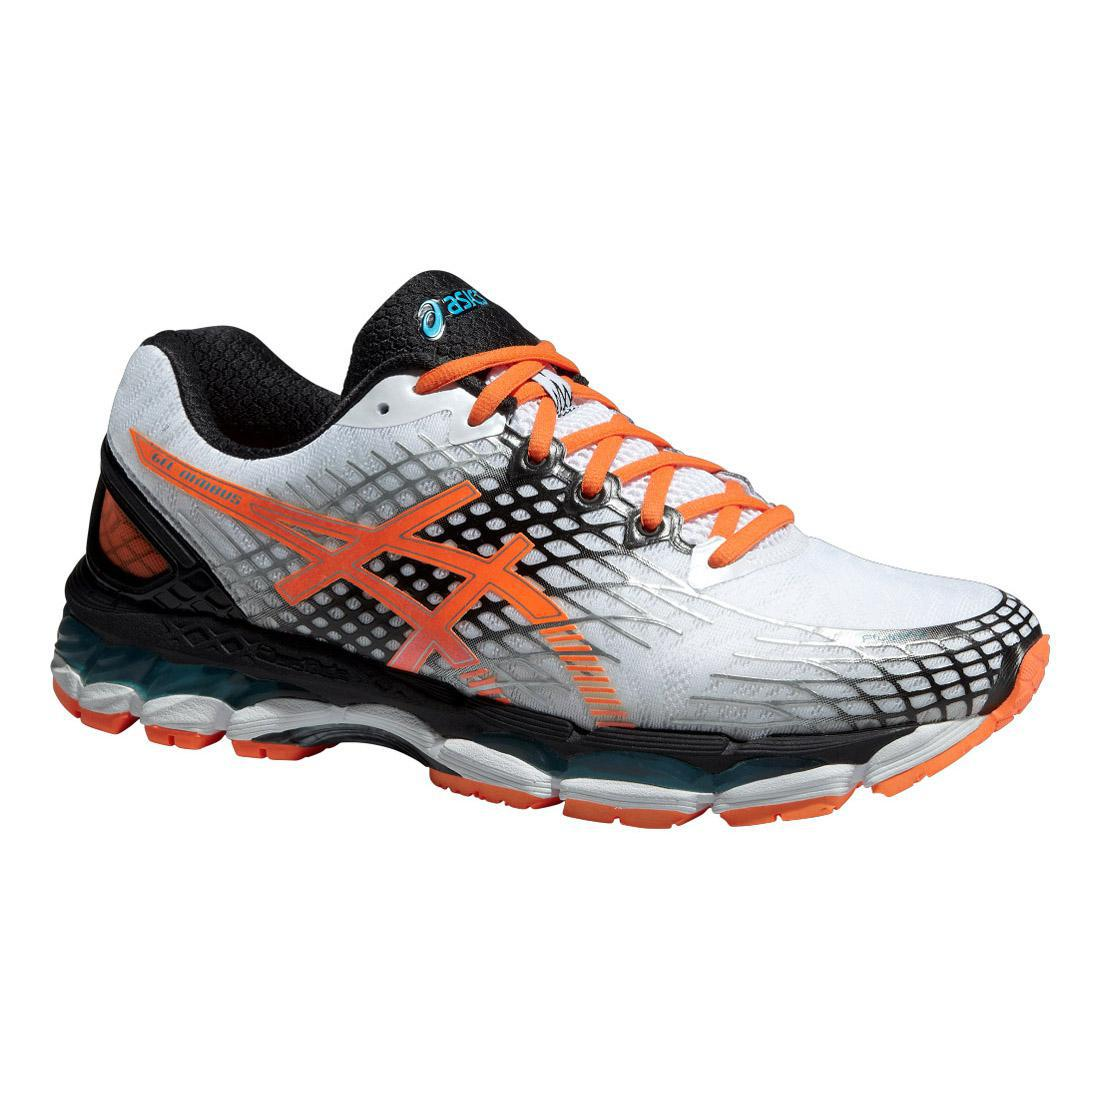 asics mens gel nimbus 17 running shoes white orange. Black Bedroom Furniture Sets. Home Design Ideas